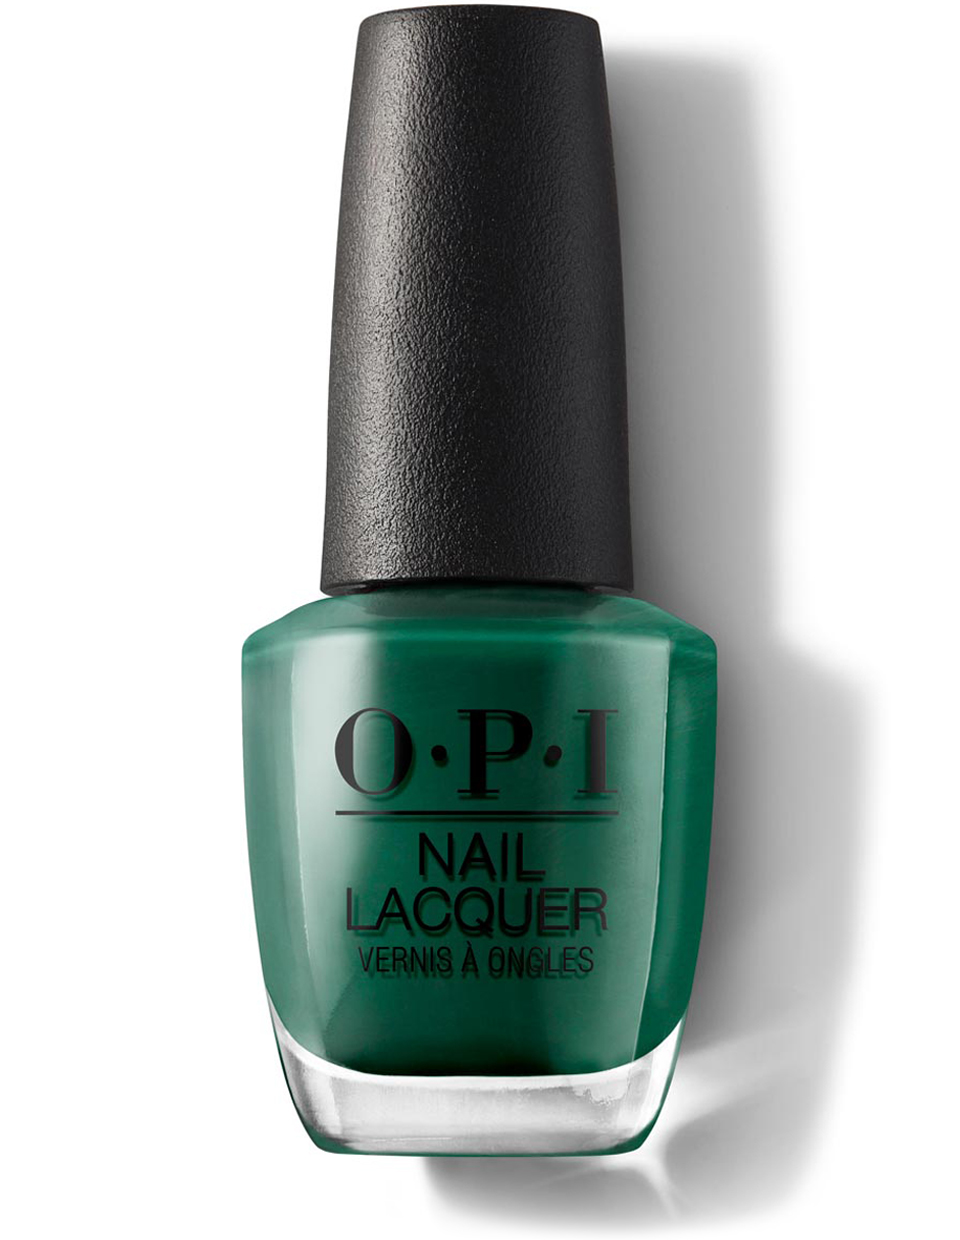 Stay Off the Lawn!! - Nail Lacquer | OPI